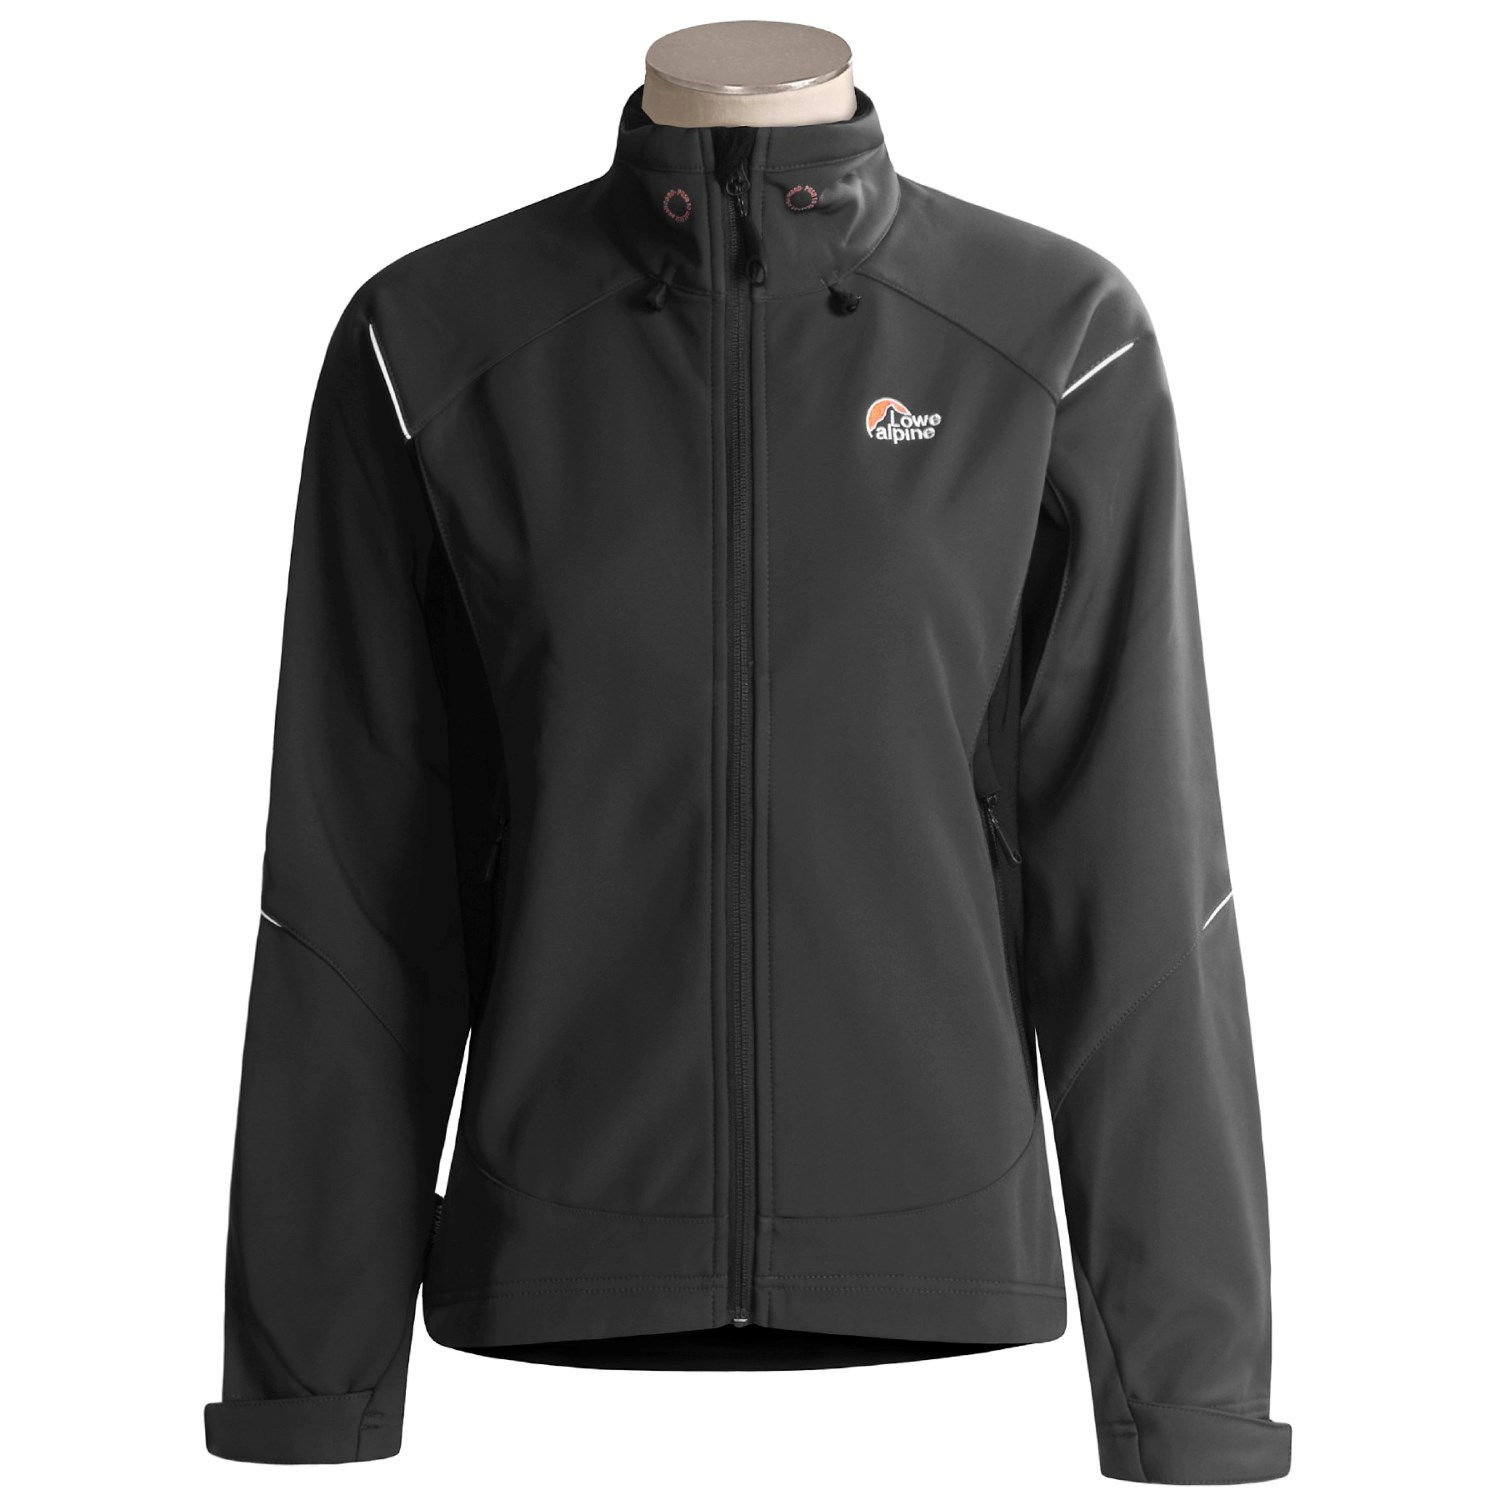 Alpine Design Clothing Company Lowe Alpine Glacion Pro Jacket